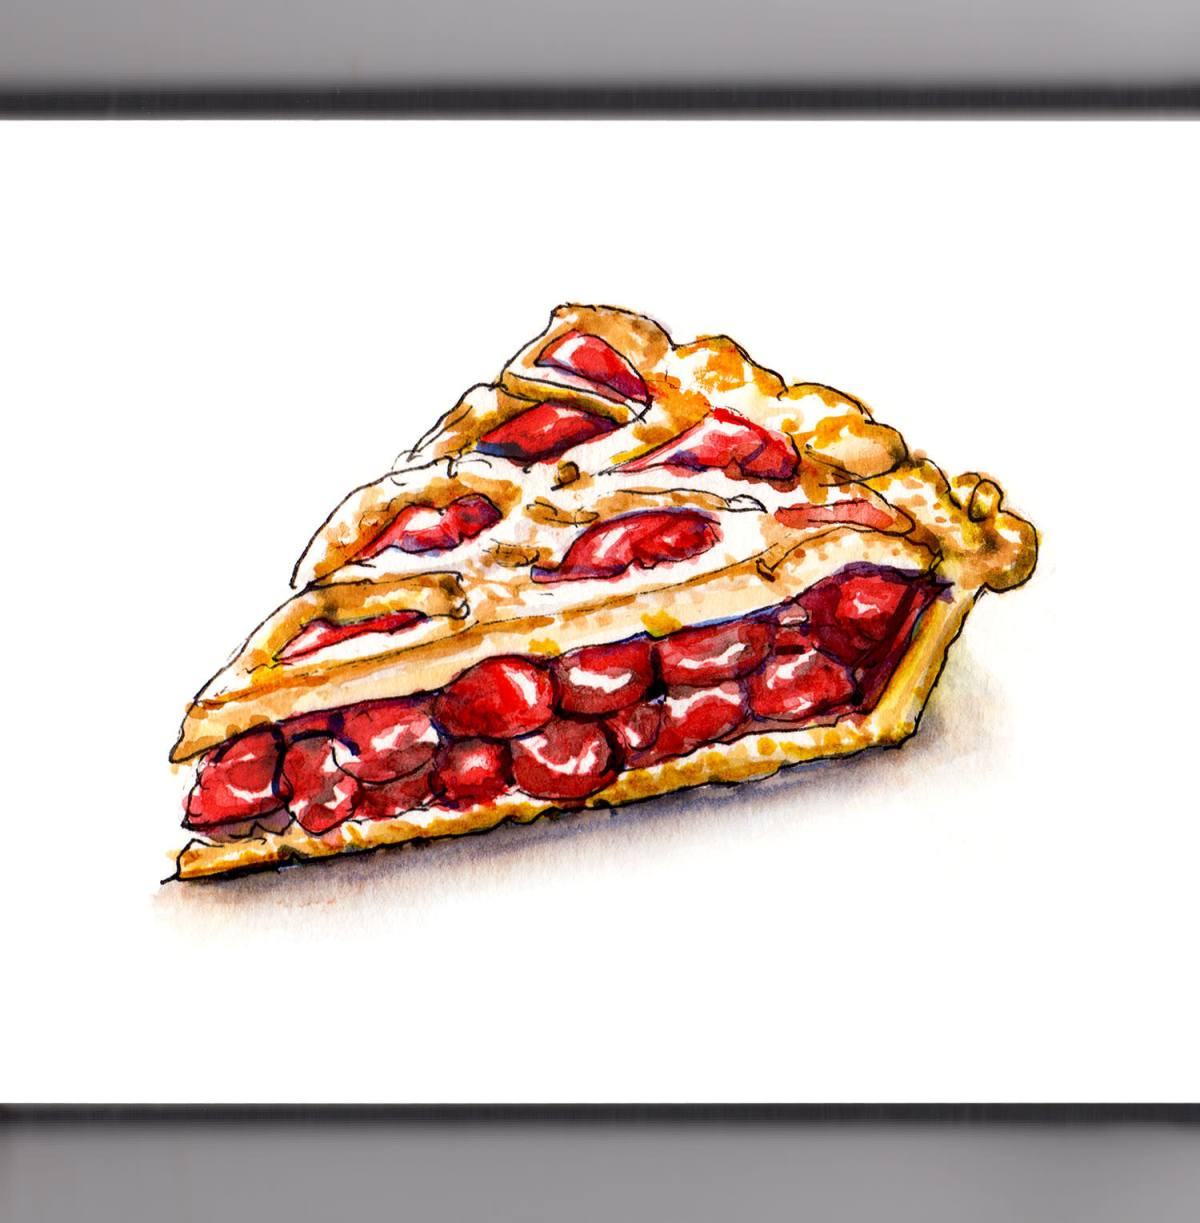 #WorldWatercolorGroup - Slice of Cherry Pie Watercolour - #doodlewash